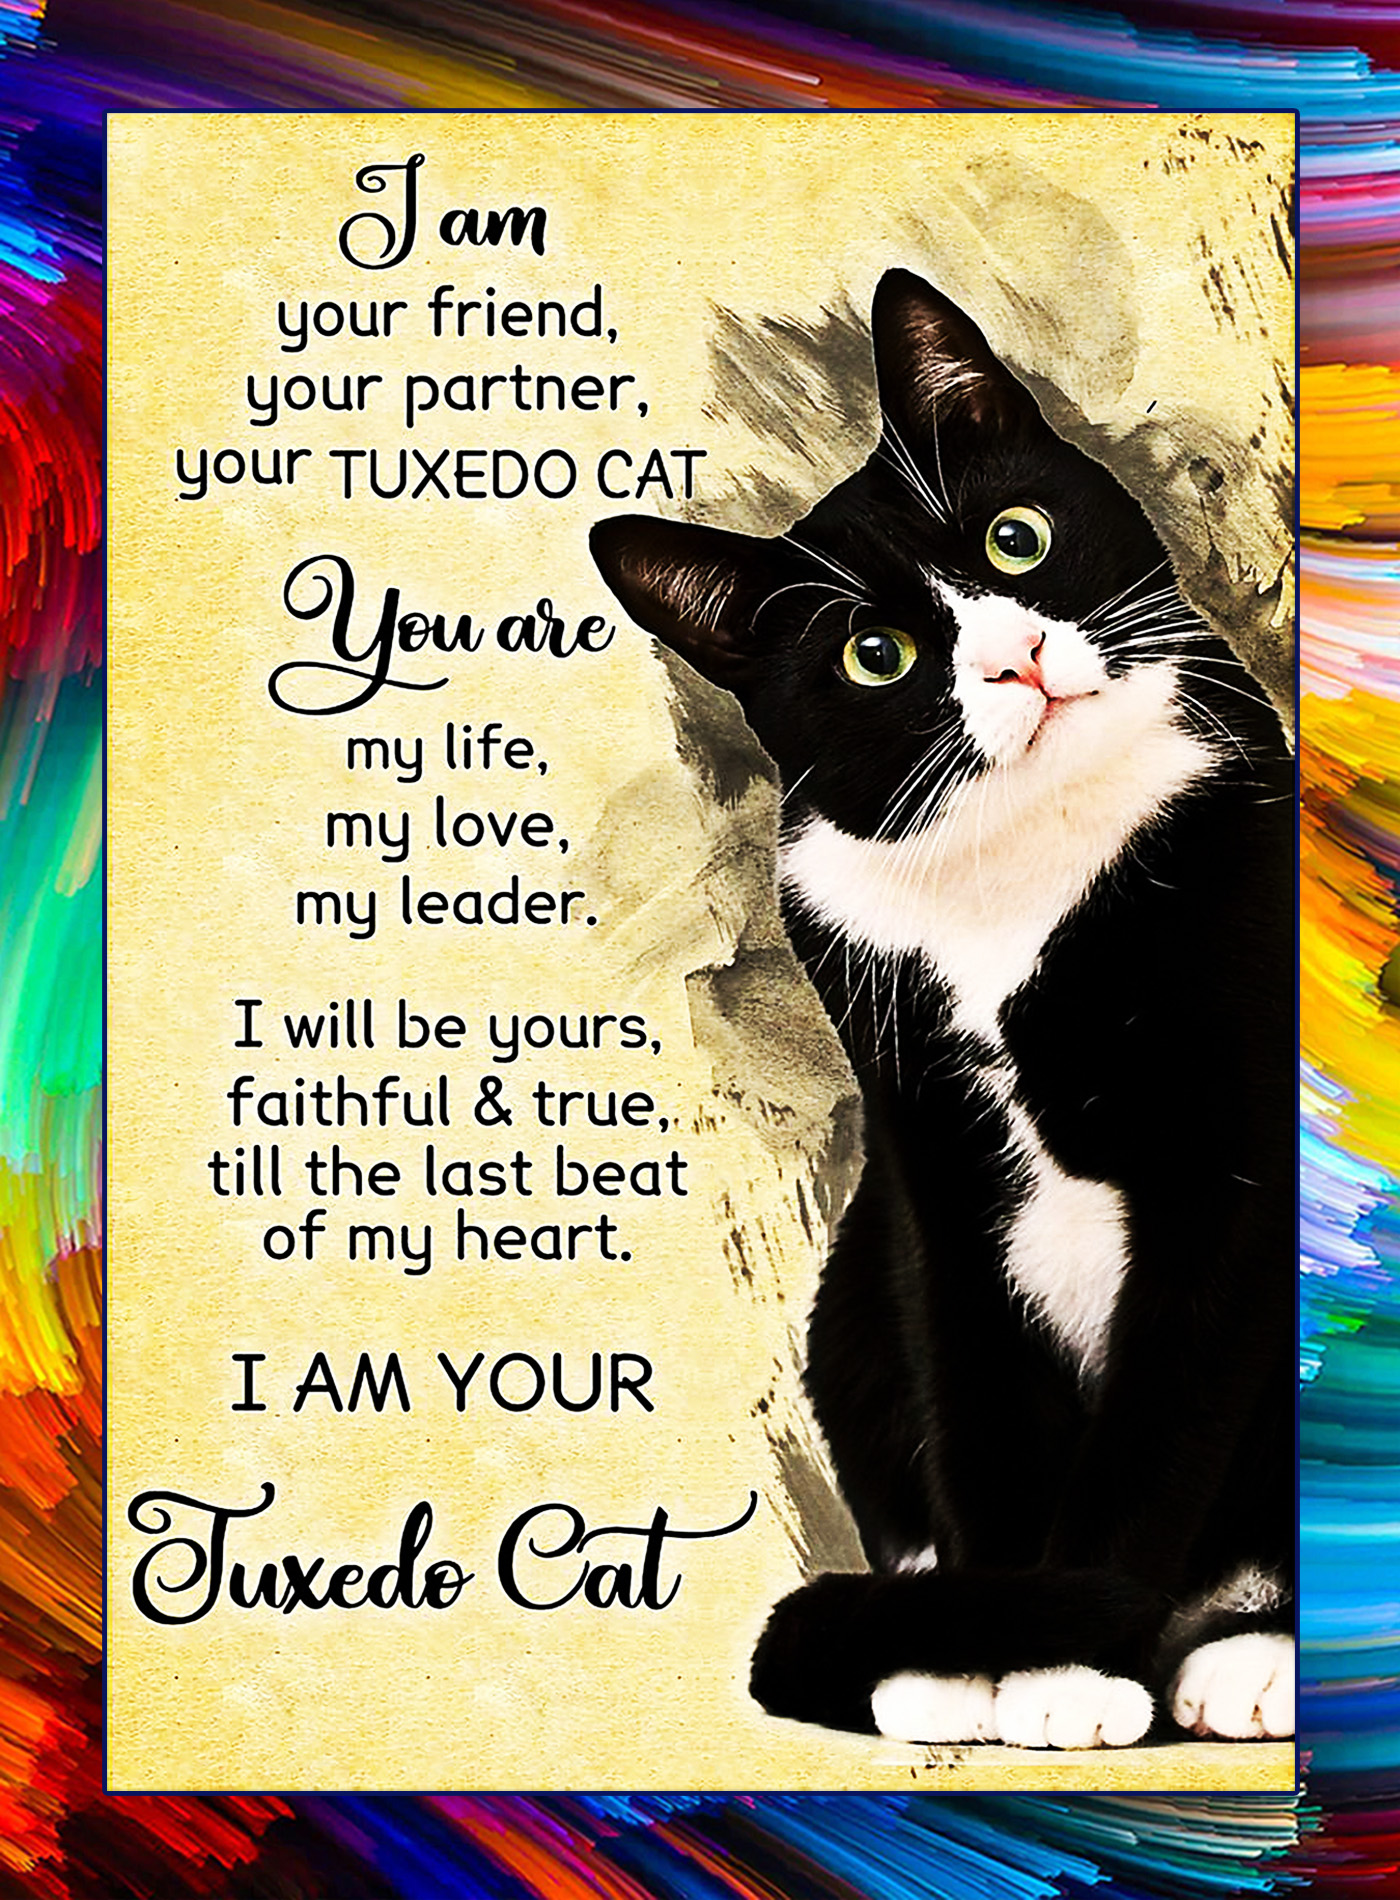 Poster I am your friend your partner your tuxedo cat - A1